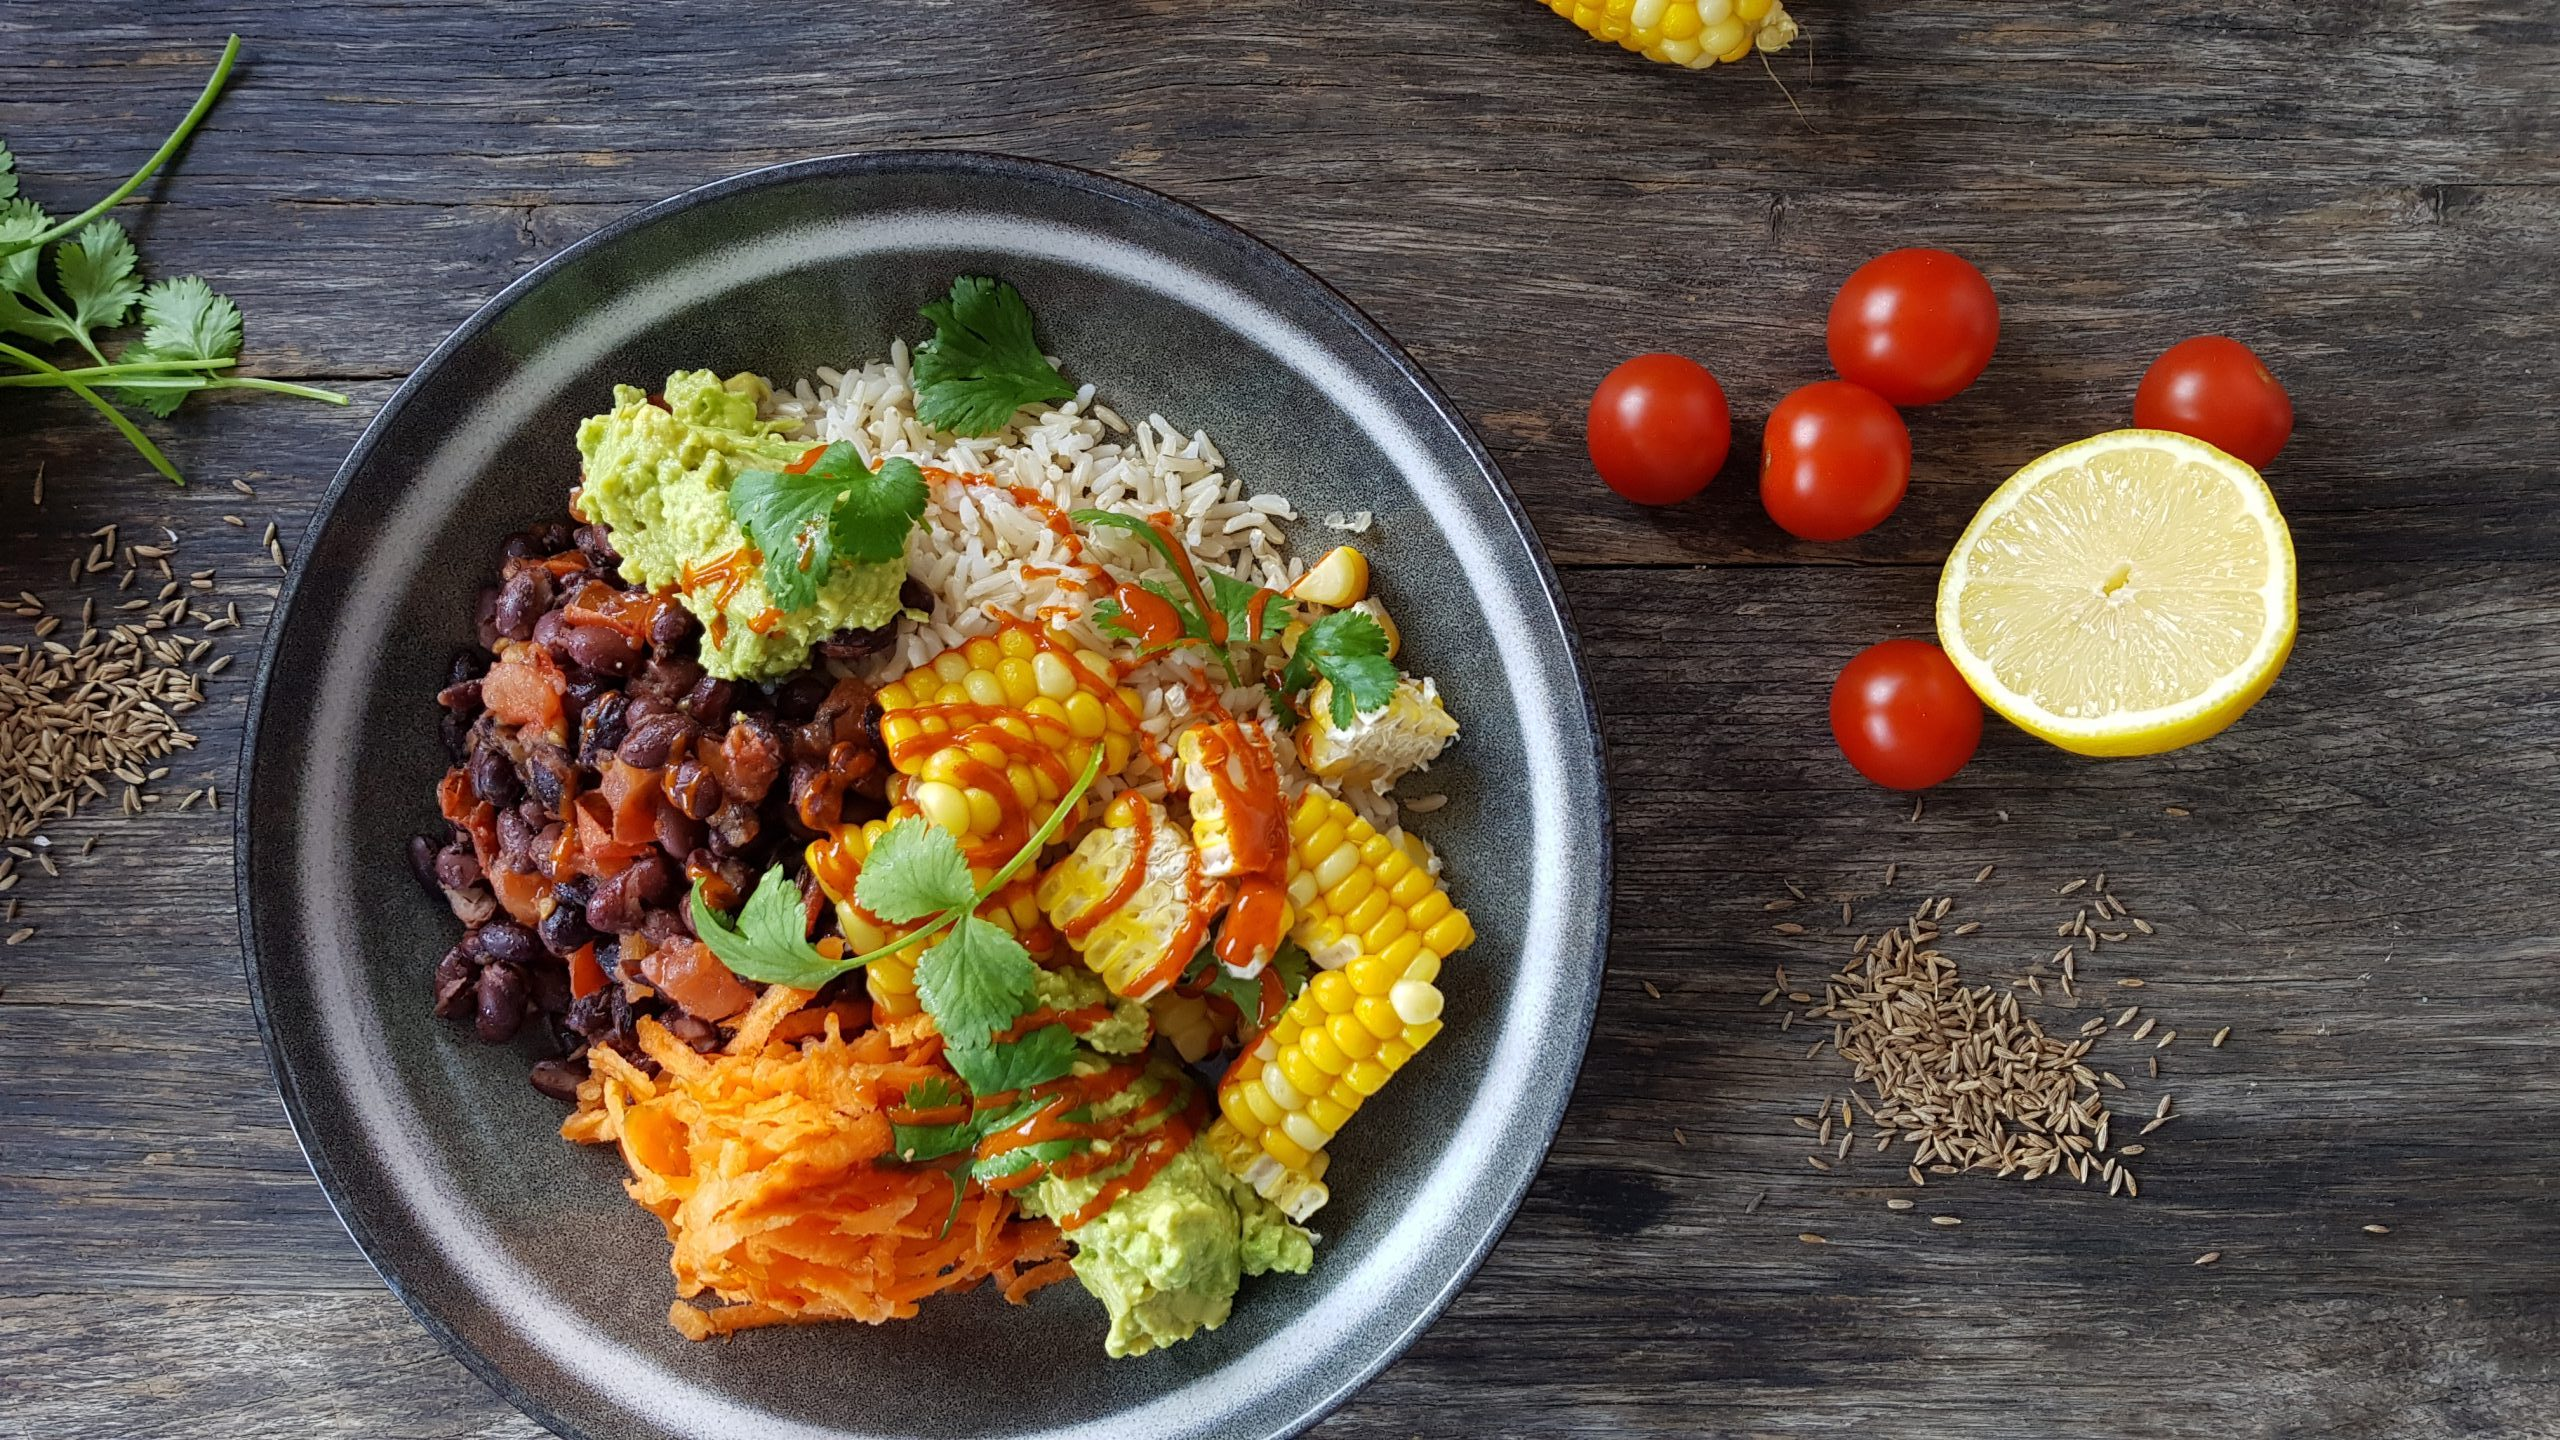 Roast corn burrito bowl with smashed avocado, spicy kidney beans and brown rice